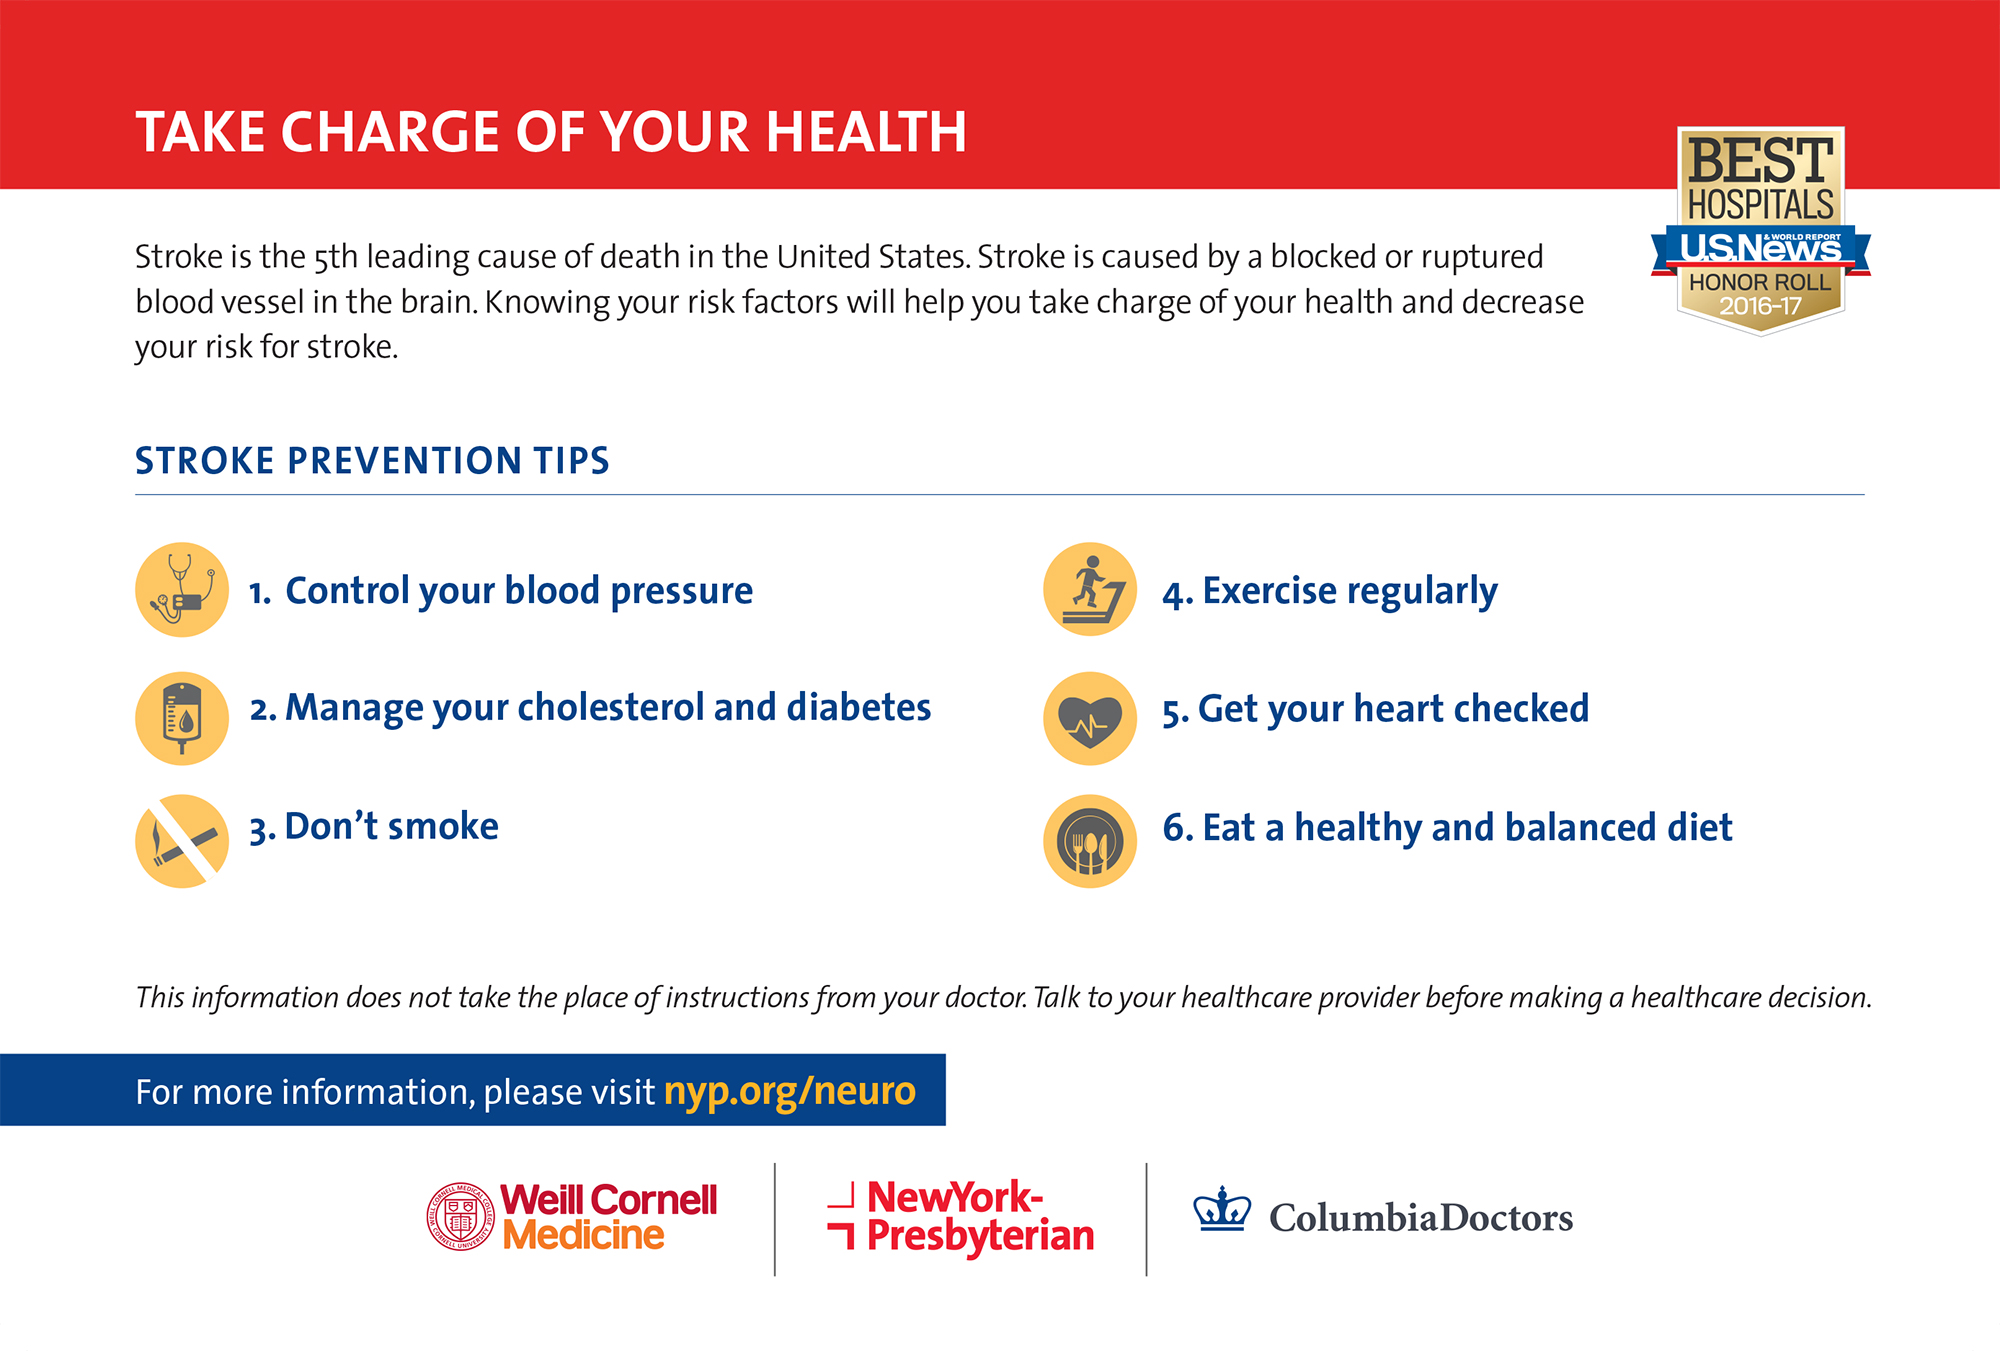 Stroke prevention tips